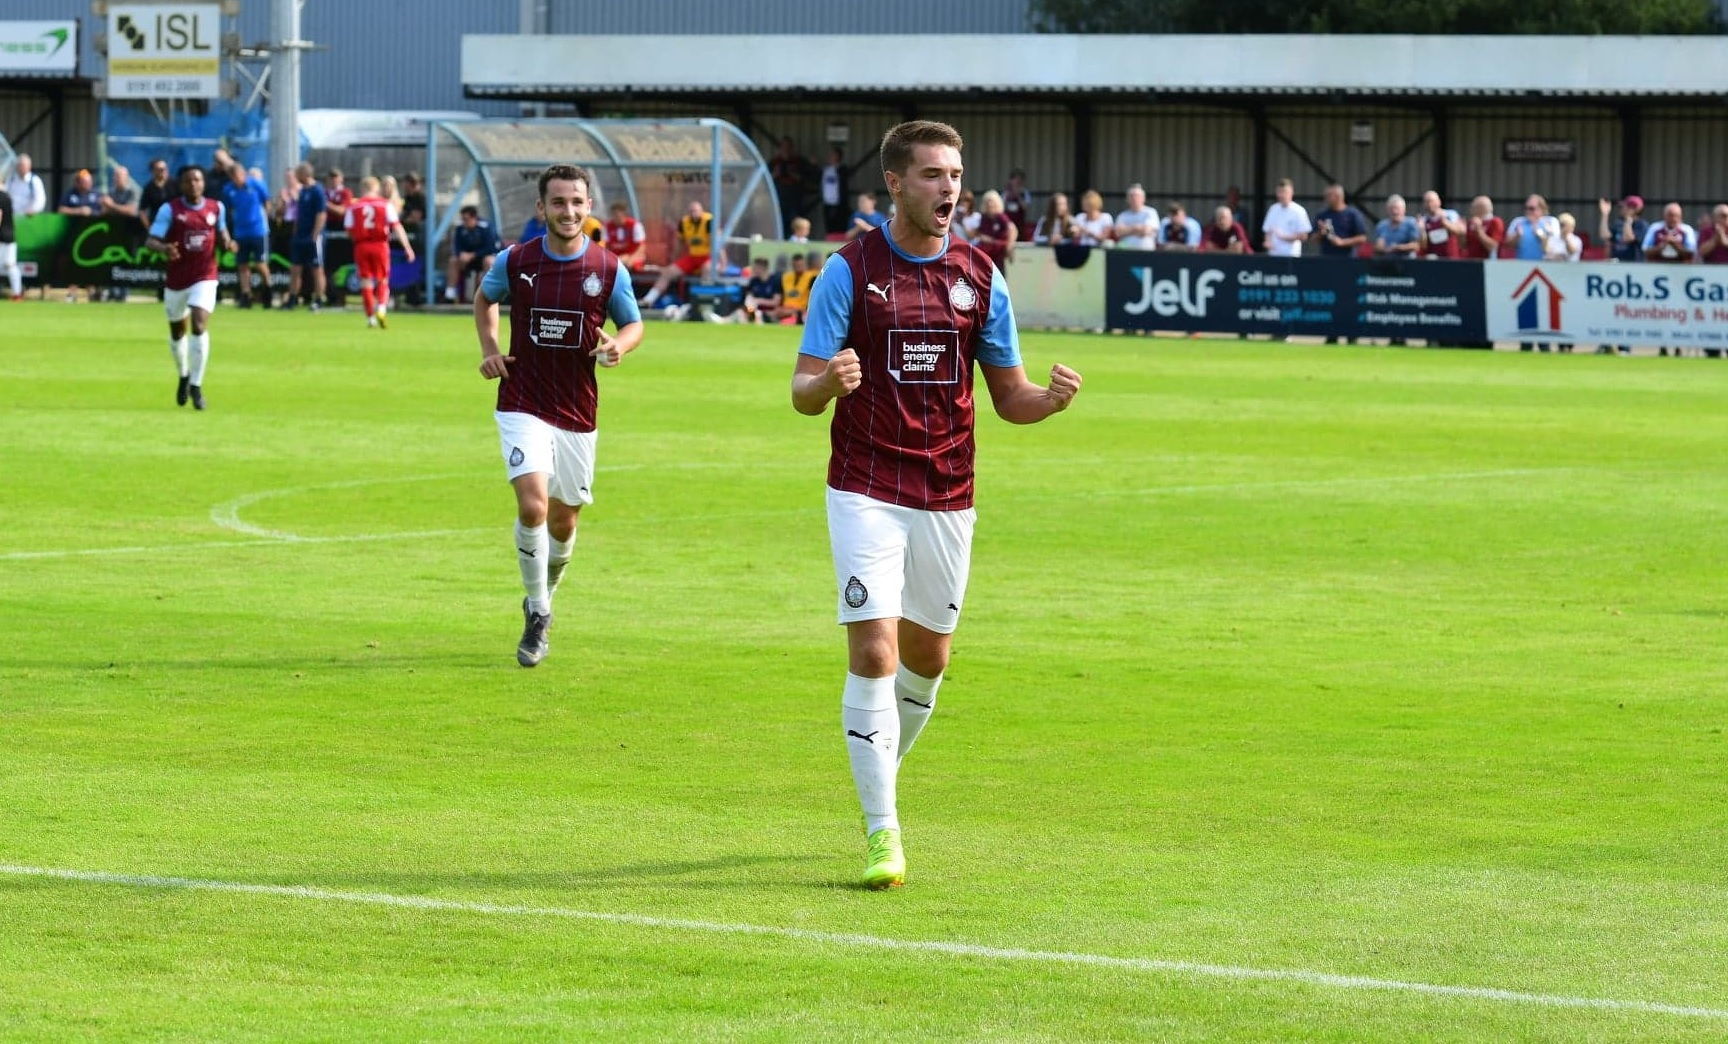 Match Preview: Ossett United vs South Shields, pre-season friendly